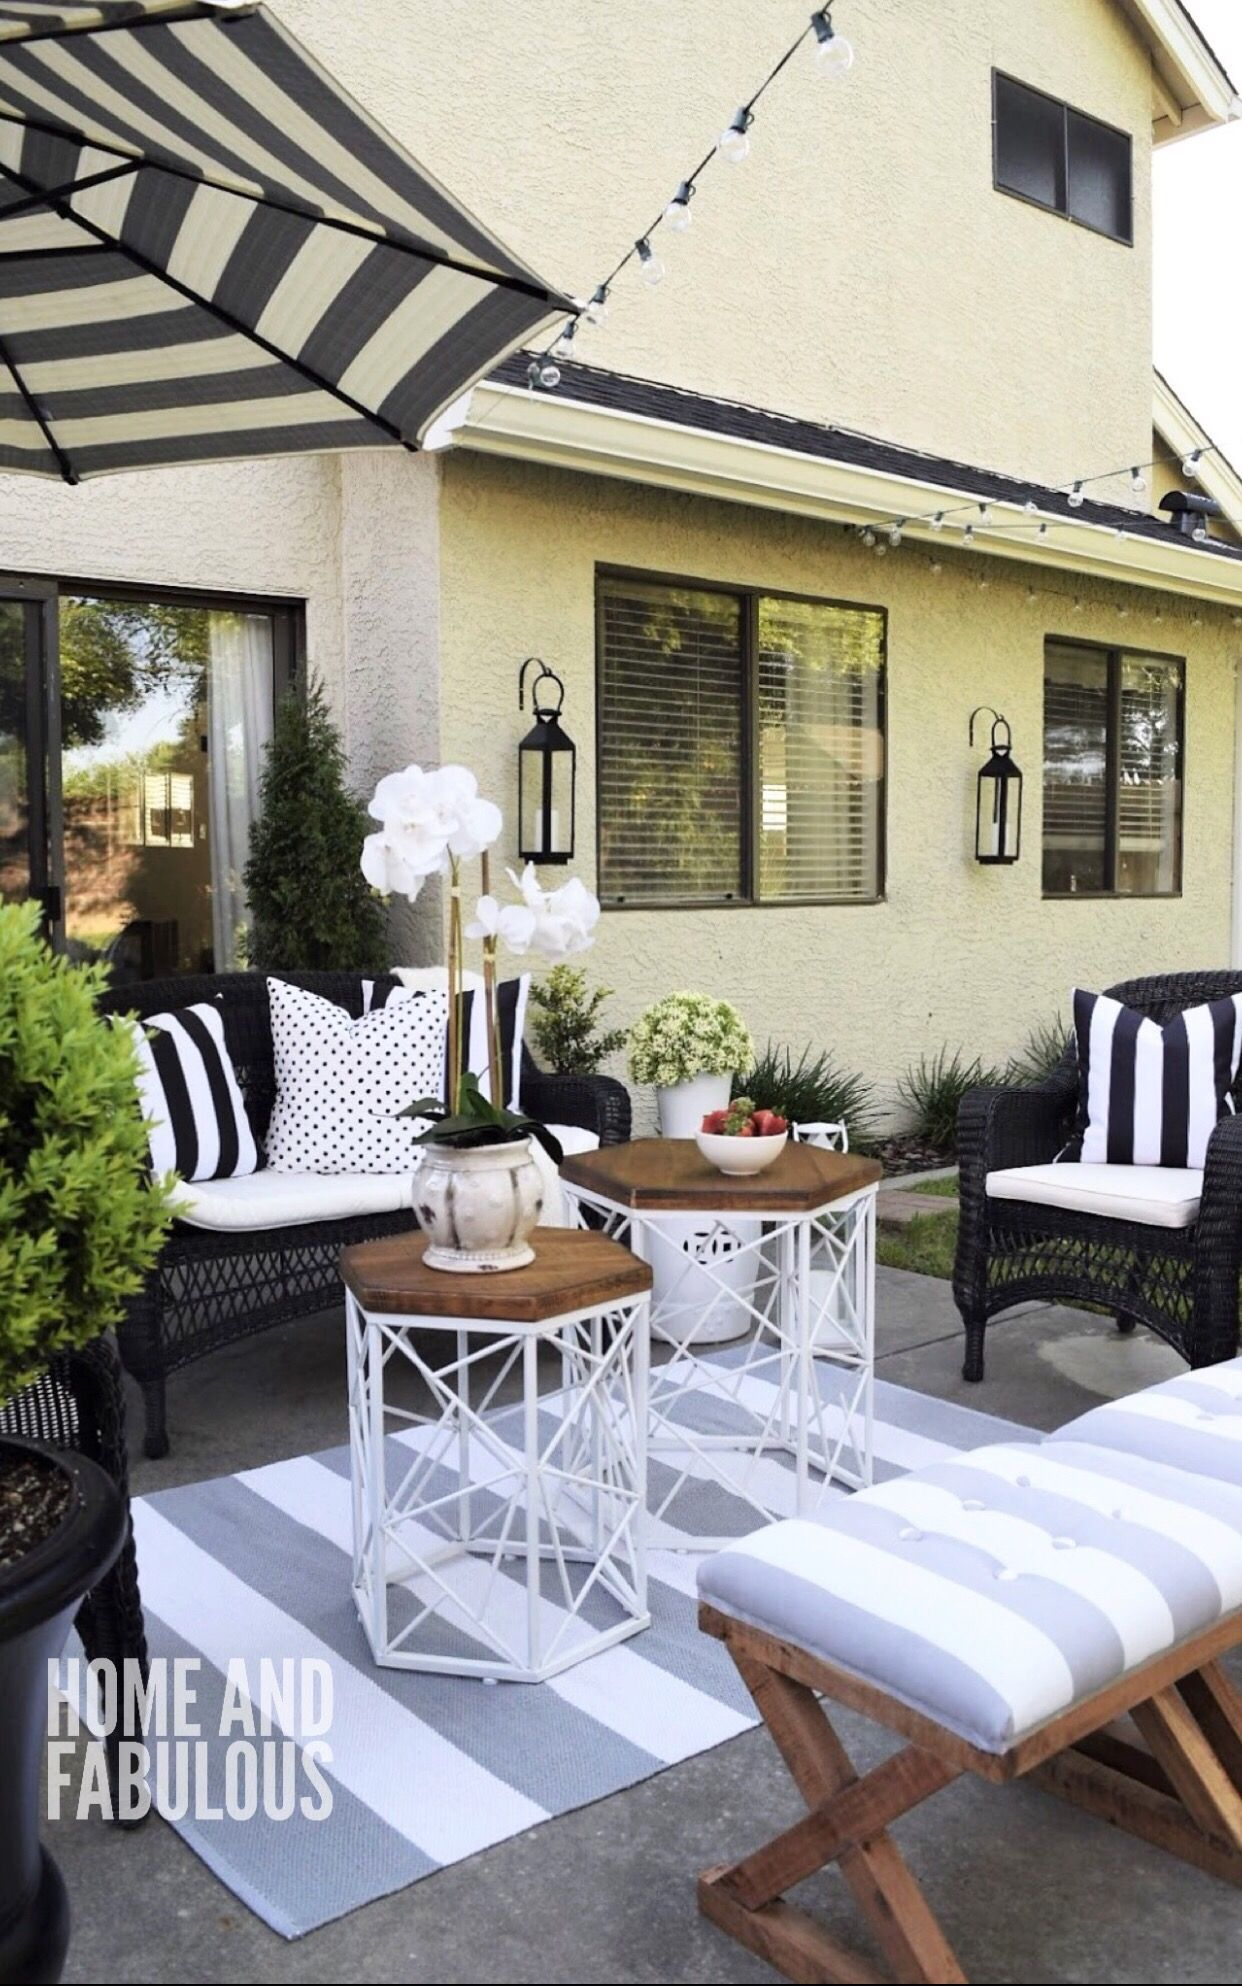 Patio 101: Bring Life to Your Outdoor Space | Backyard ... on Black And White Backyard Decor  id=22511